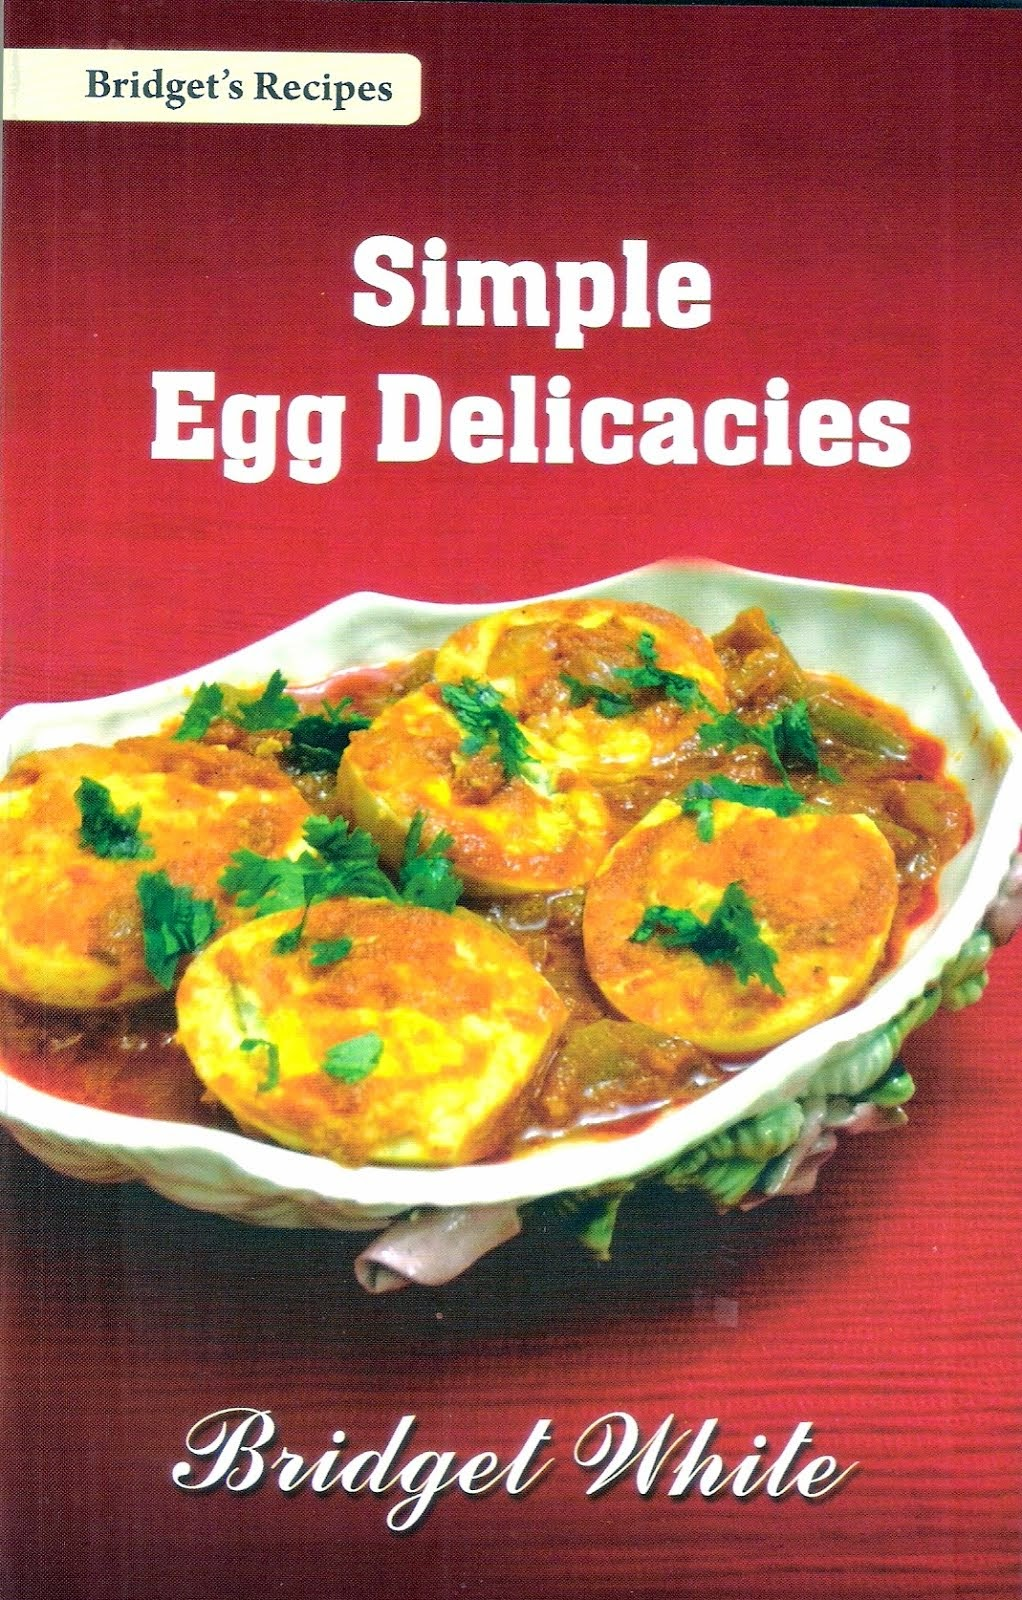 SIMPLE EGG DELICACIES